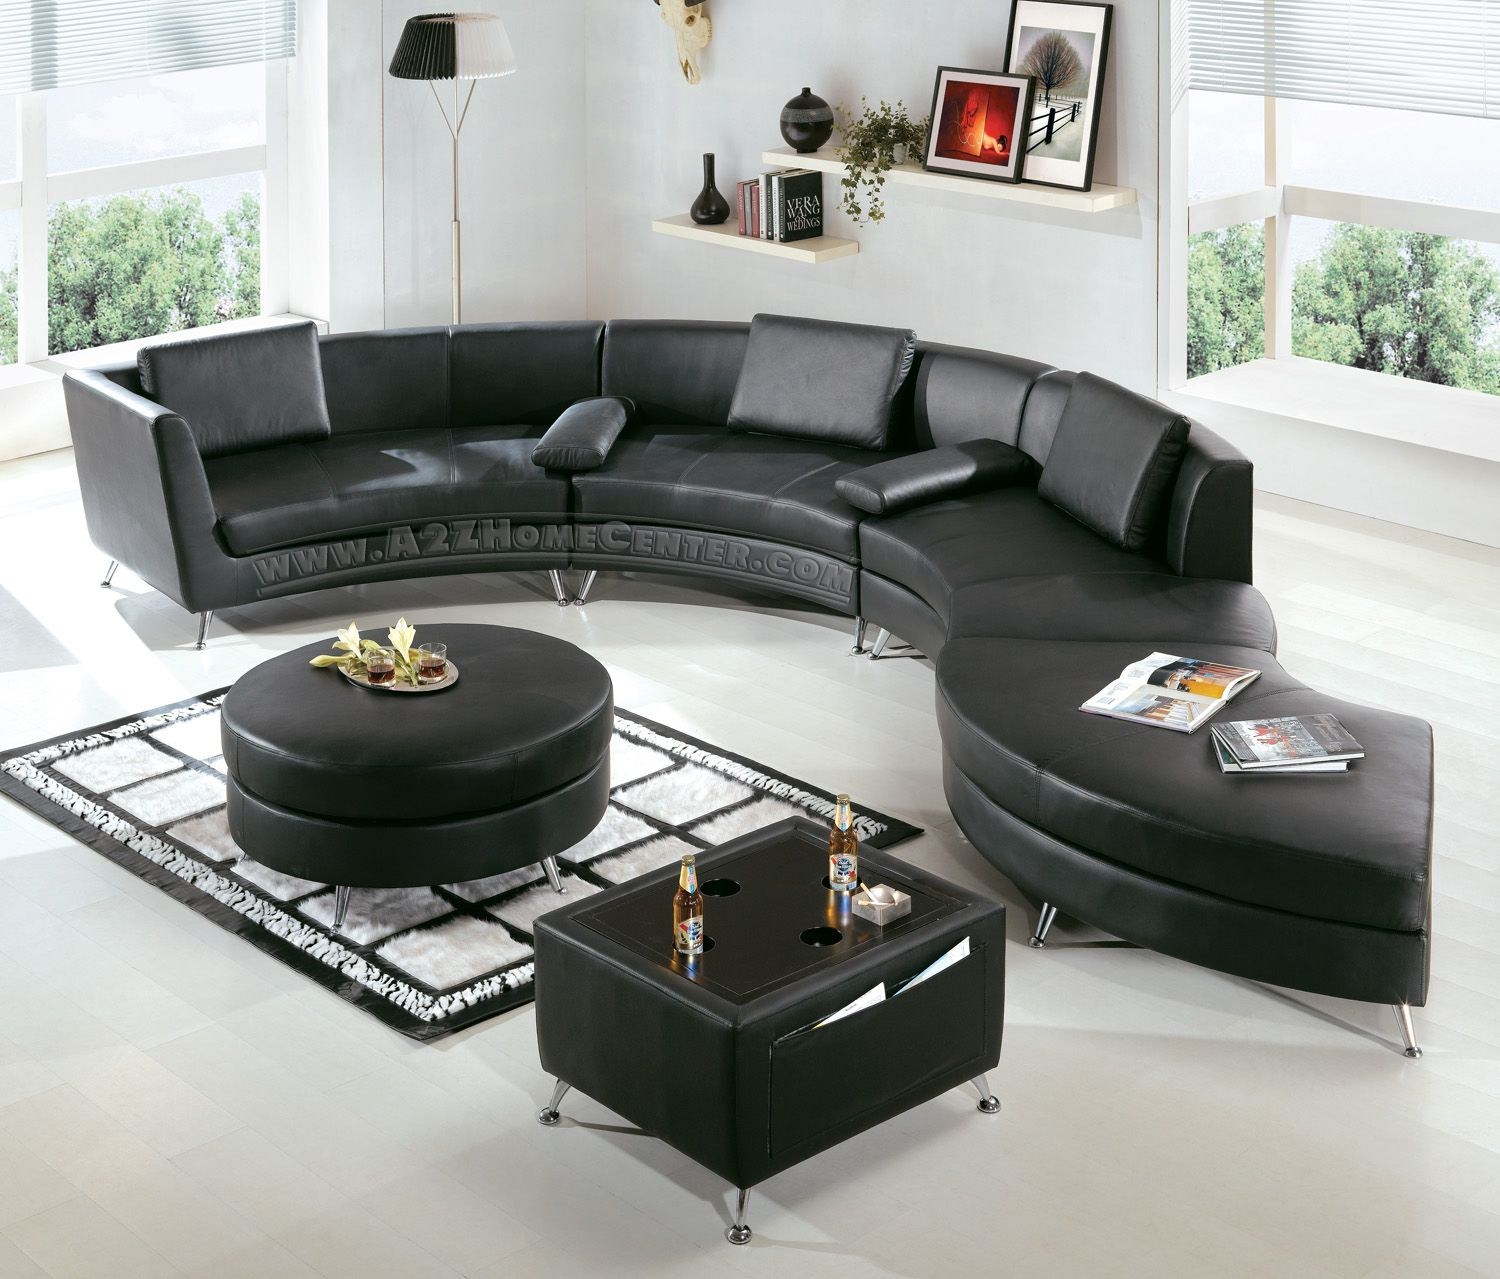 1000+ images about living rm furniture on Pinterest - ^